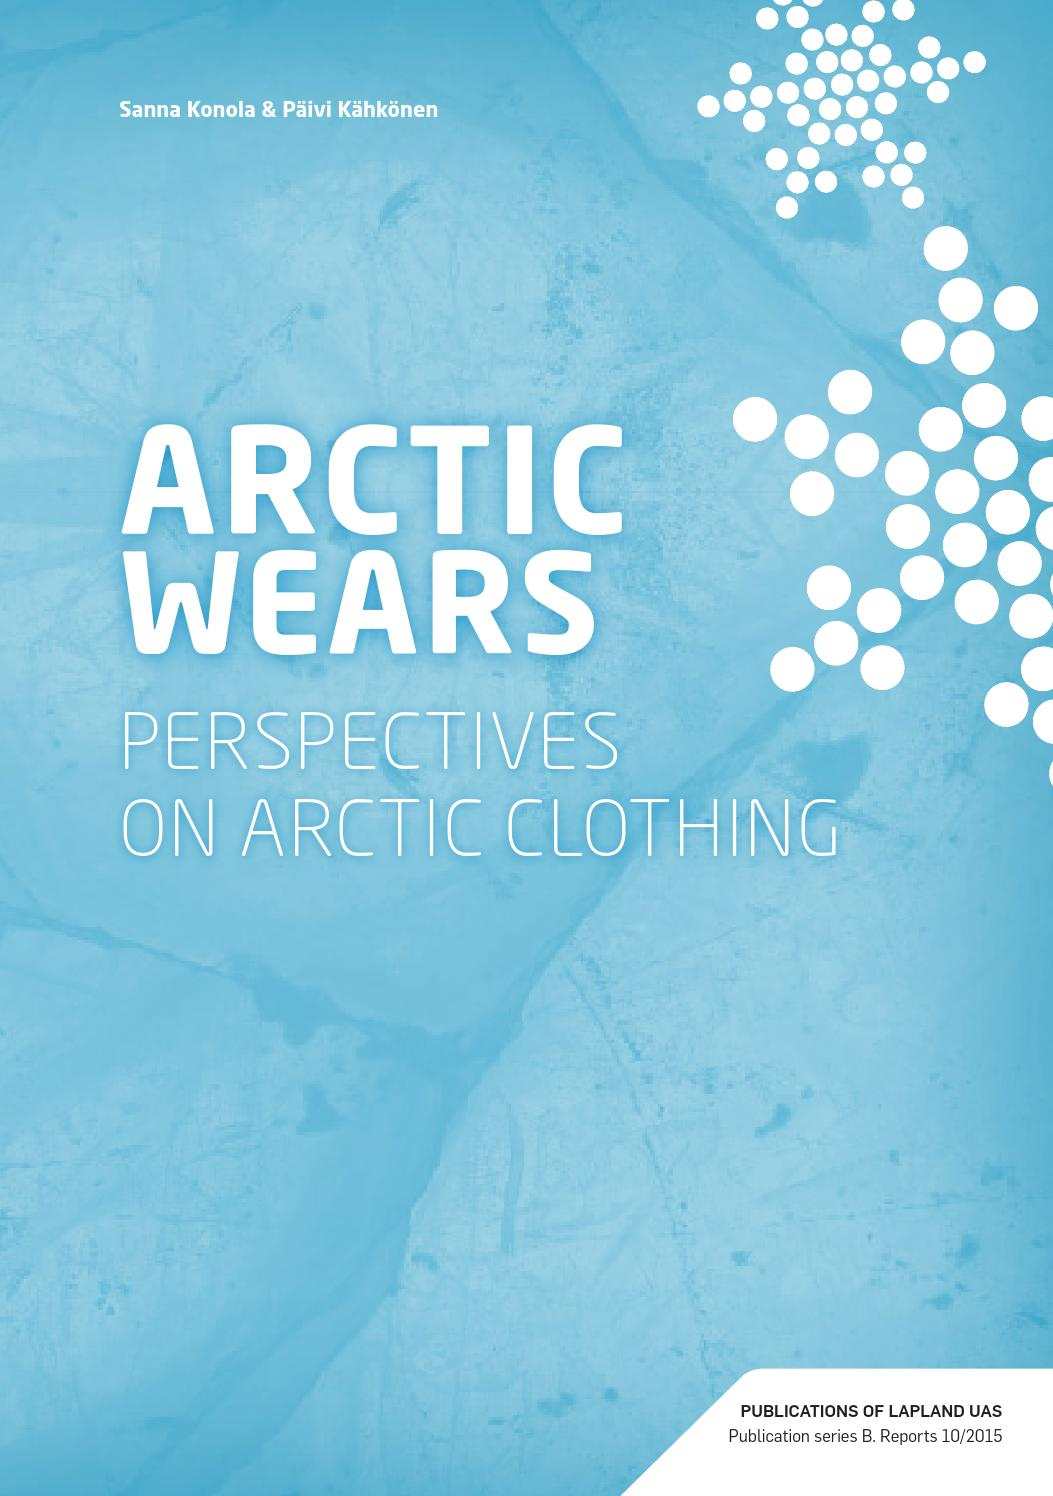 Arctic Wears - Perspectives on Arctic Clothing by Lapin AMK - issuu